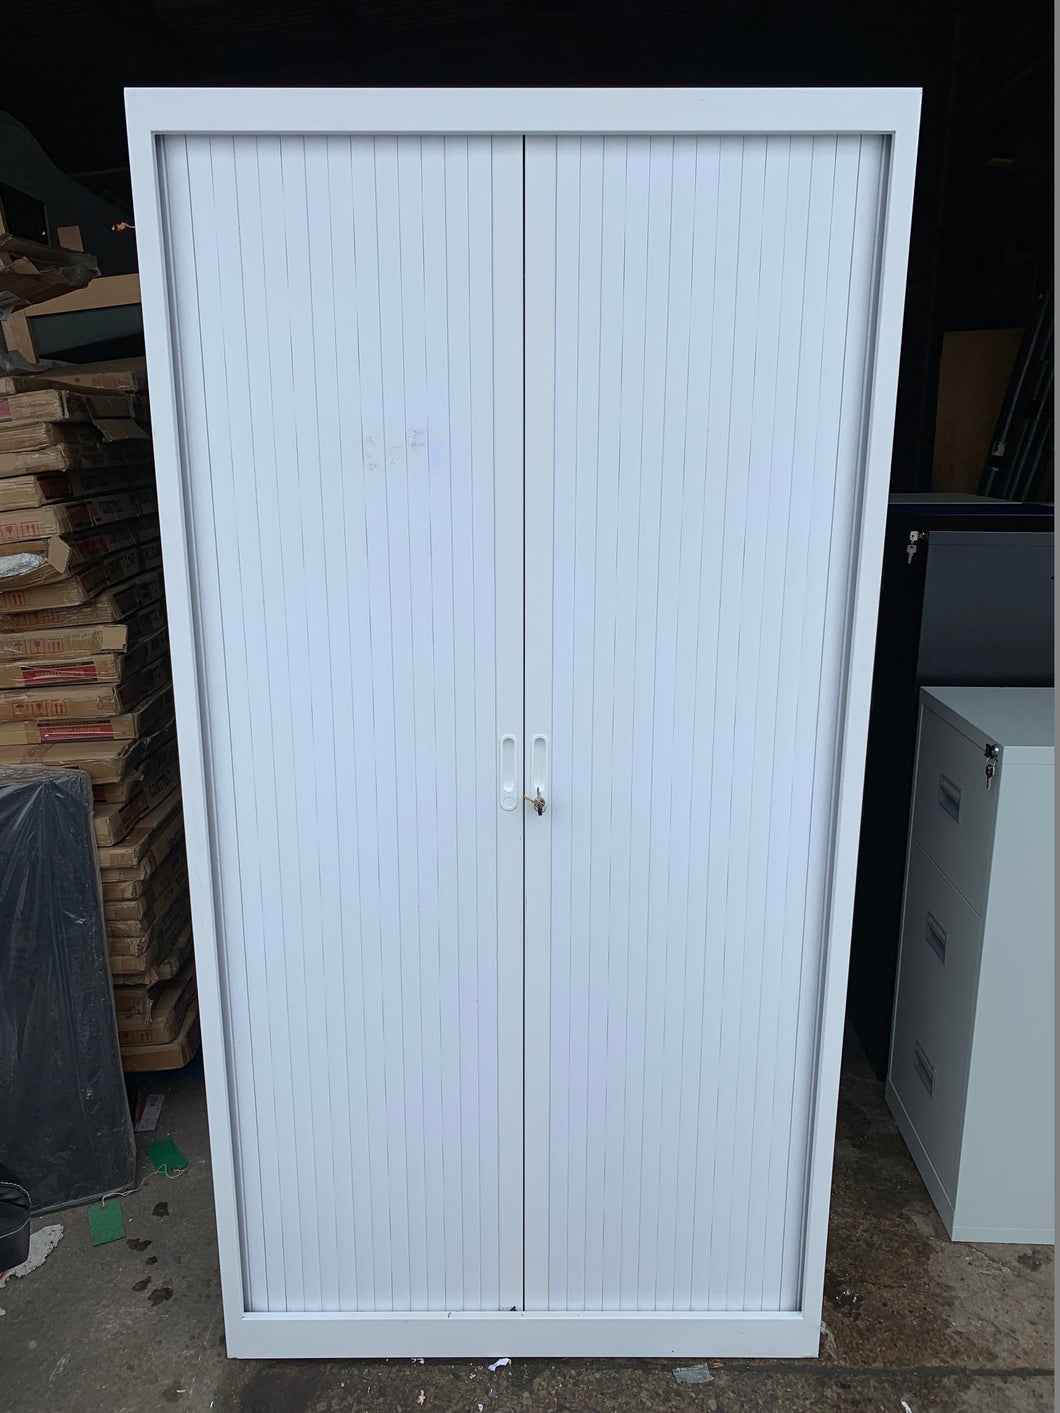 Talos Steel Storage Tall Tambour White (New Second) - Flogit2us.com